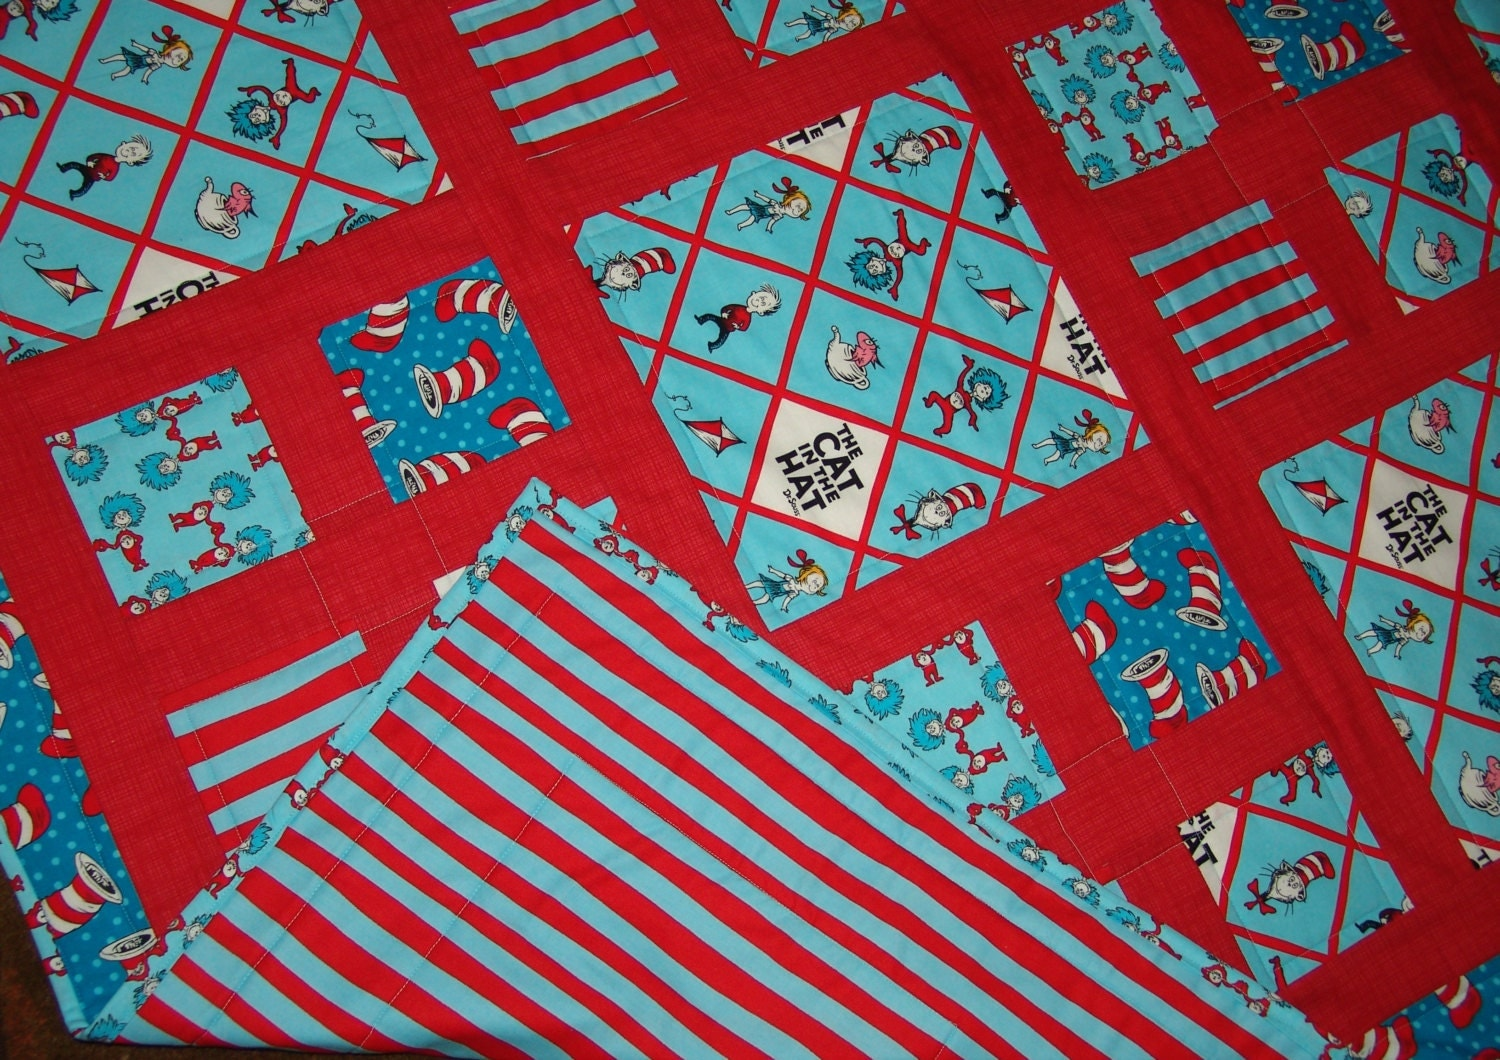 Cat in the hat by dr seuss themed fabric baby or lap quilt for Baby themed fabric